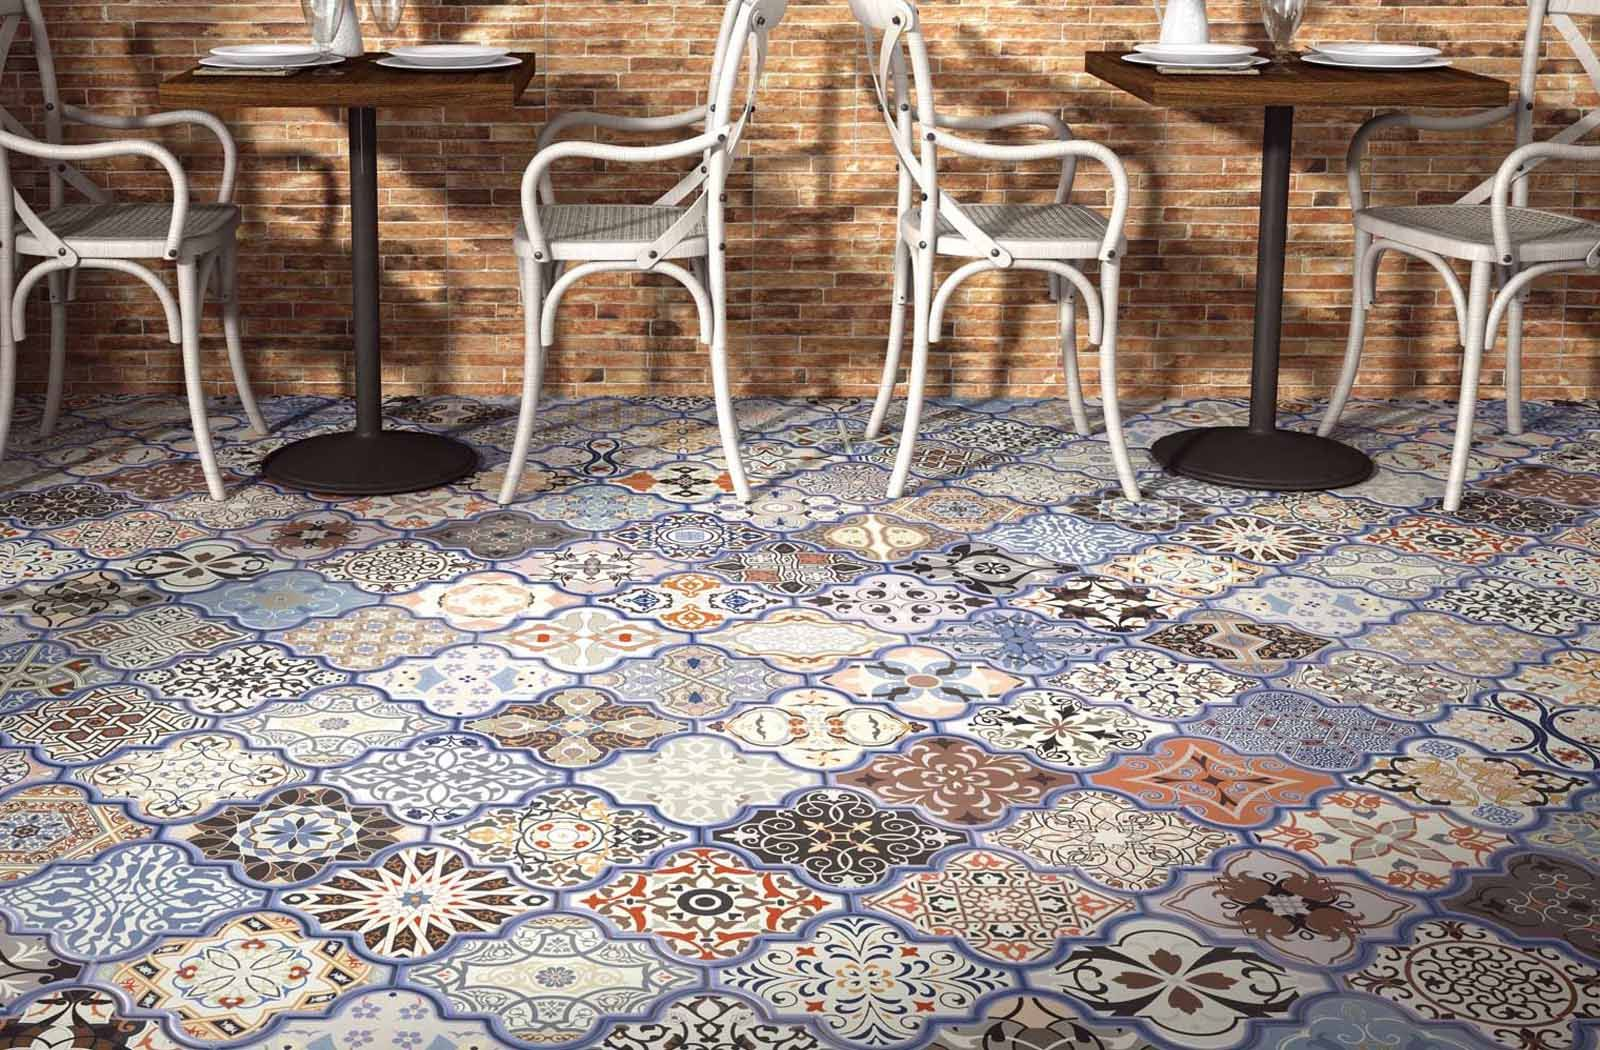 Colourful Patterned Moroccan Inspired Tile Eternity From Realonda Tile Floor Tiles Tile Cladding